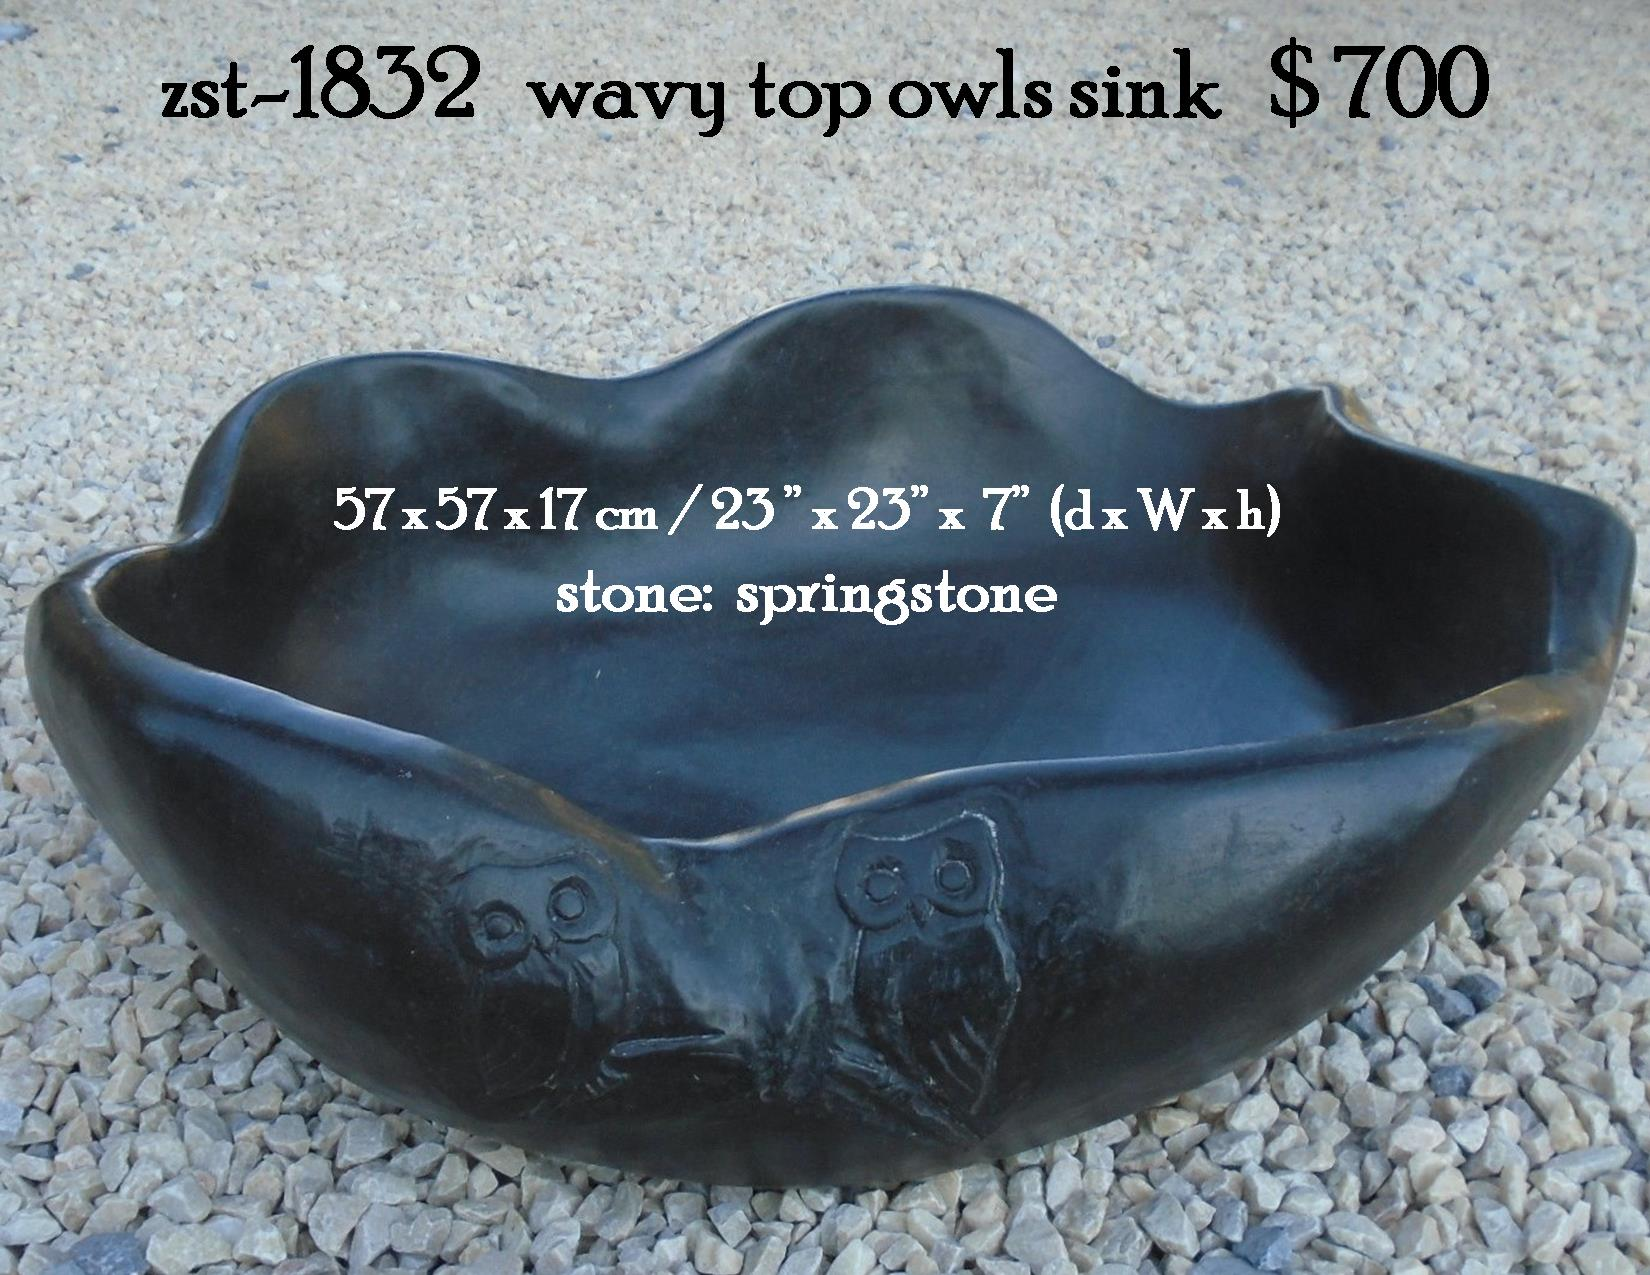 zst-1832   wavy top owls sink